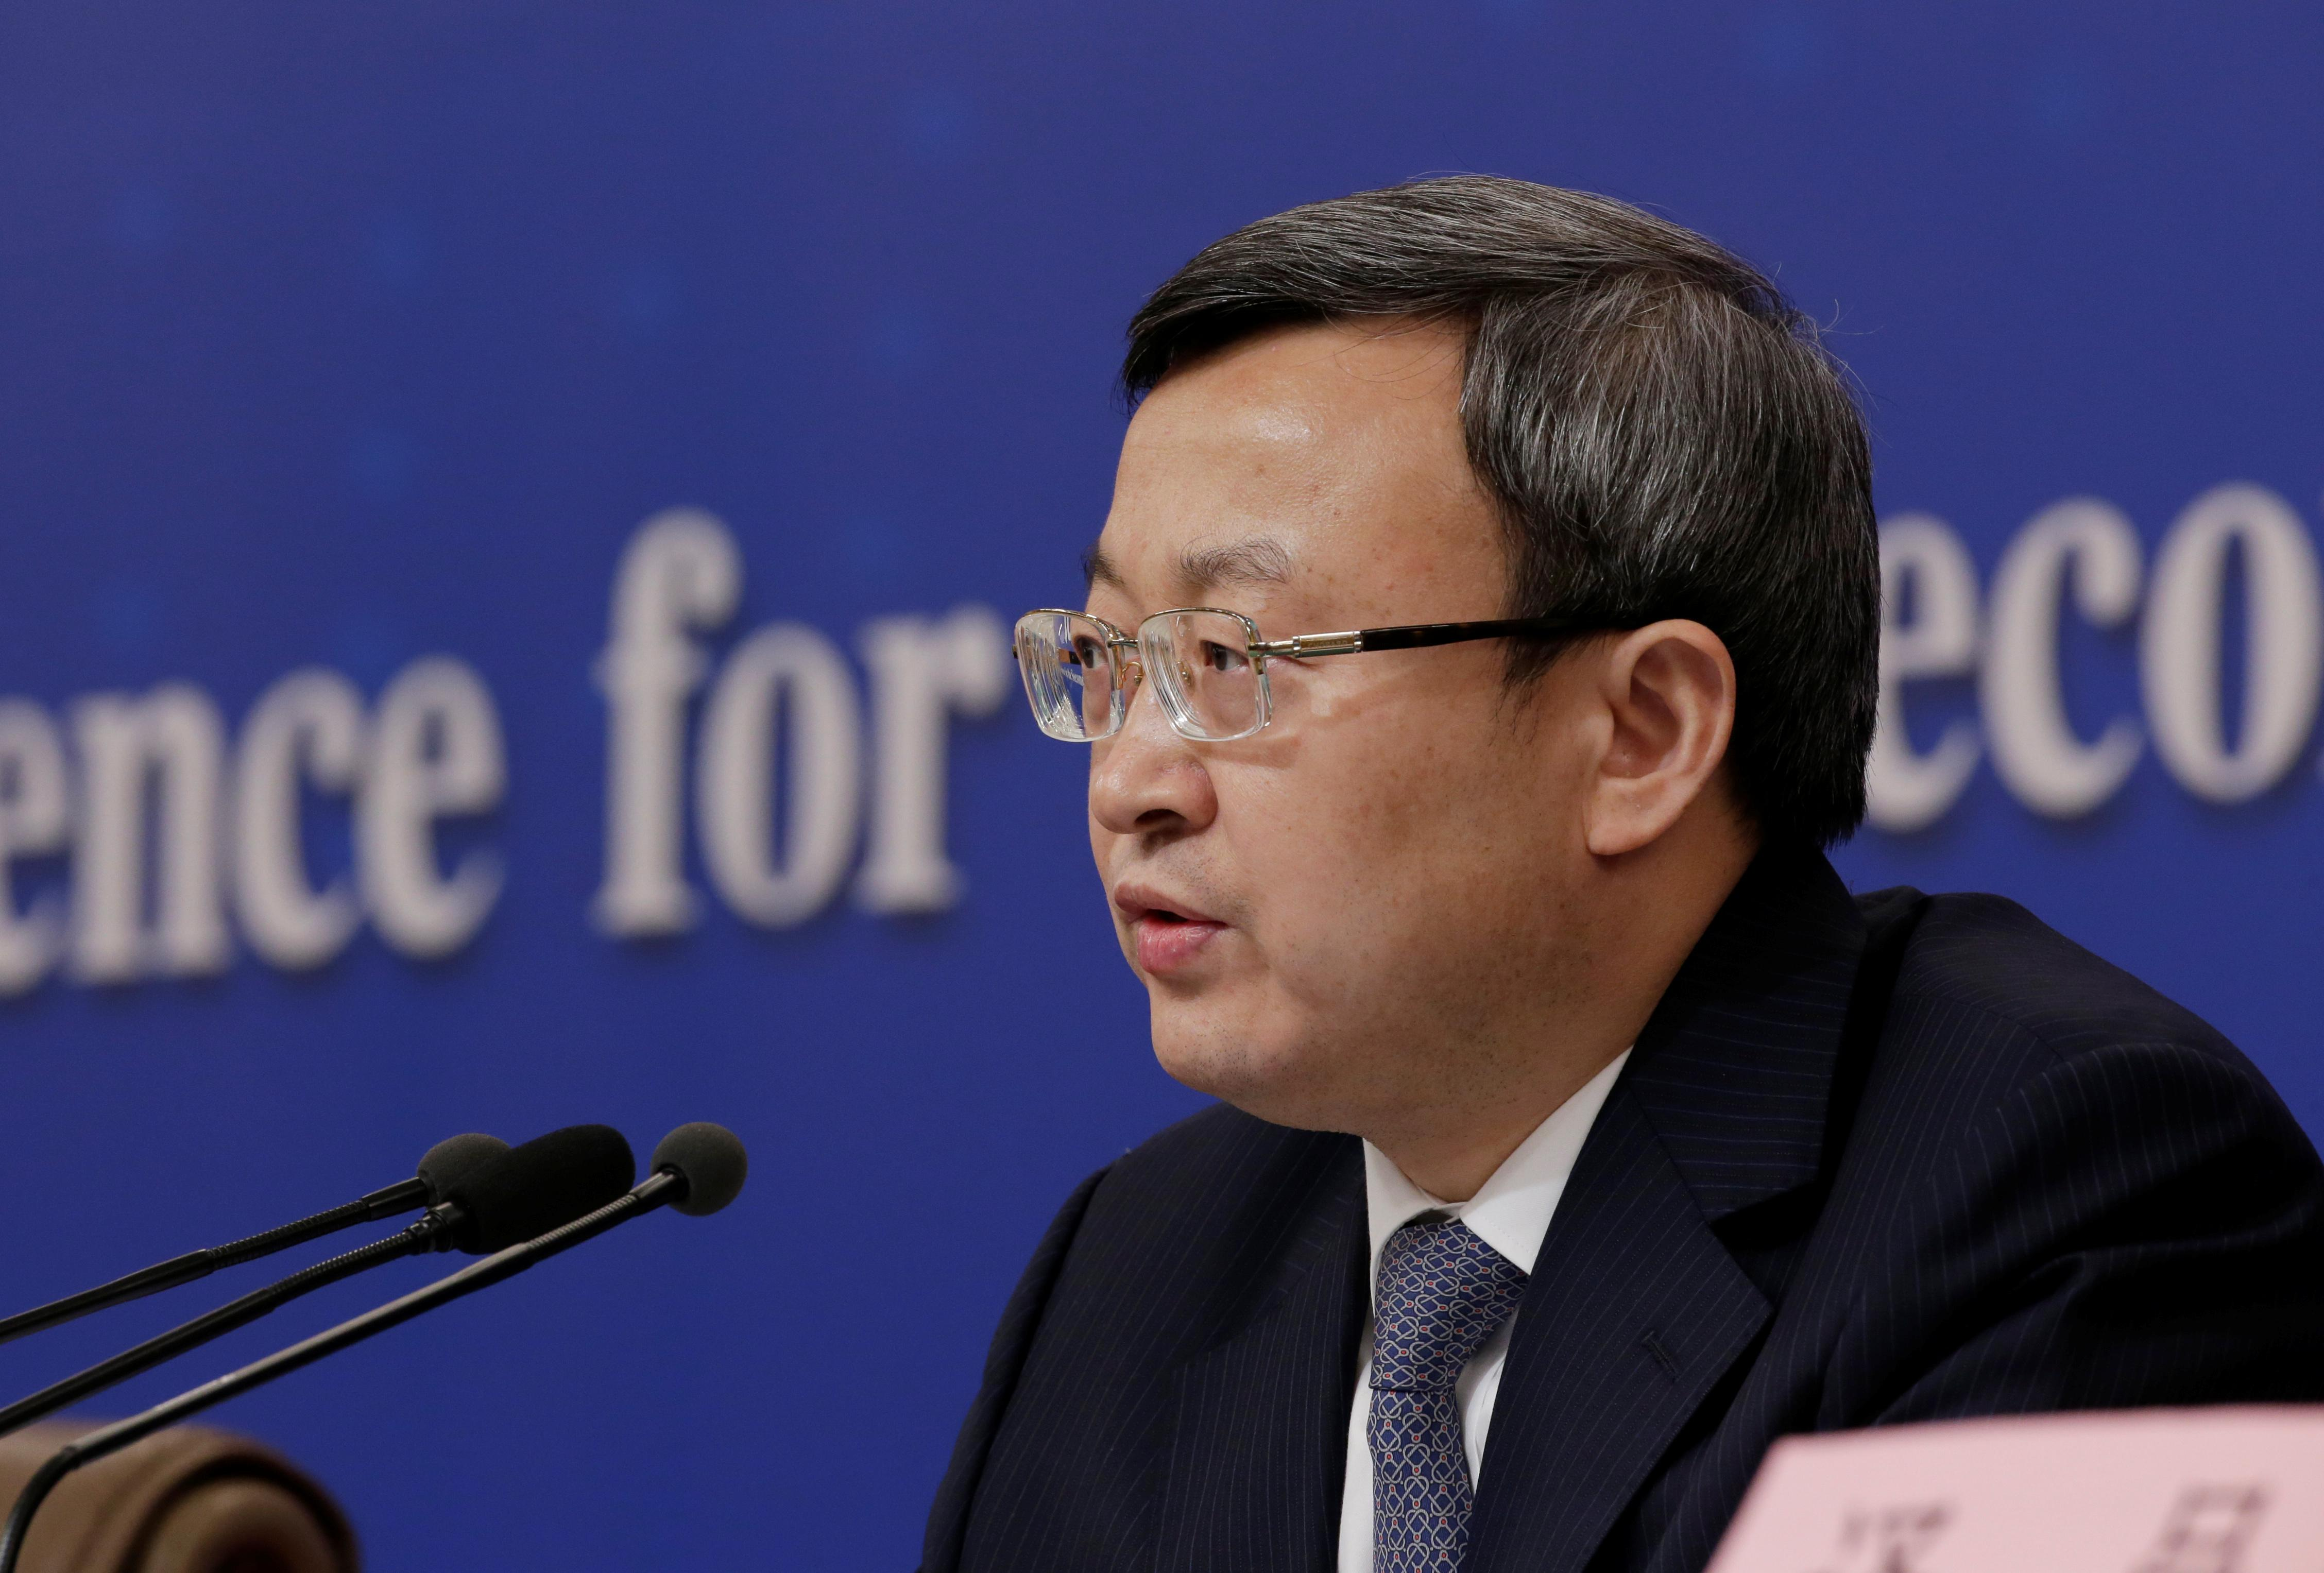 China says both U.S., China should make compromises in trade talks